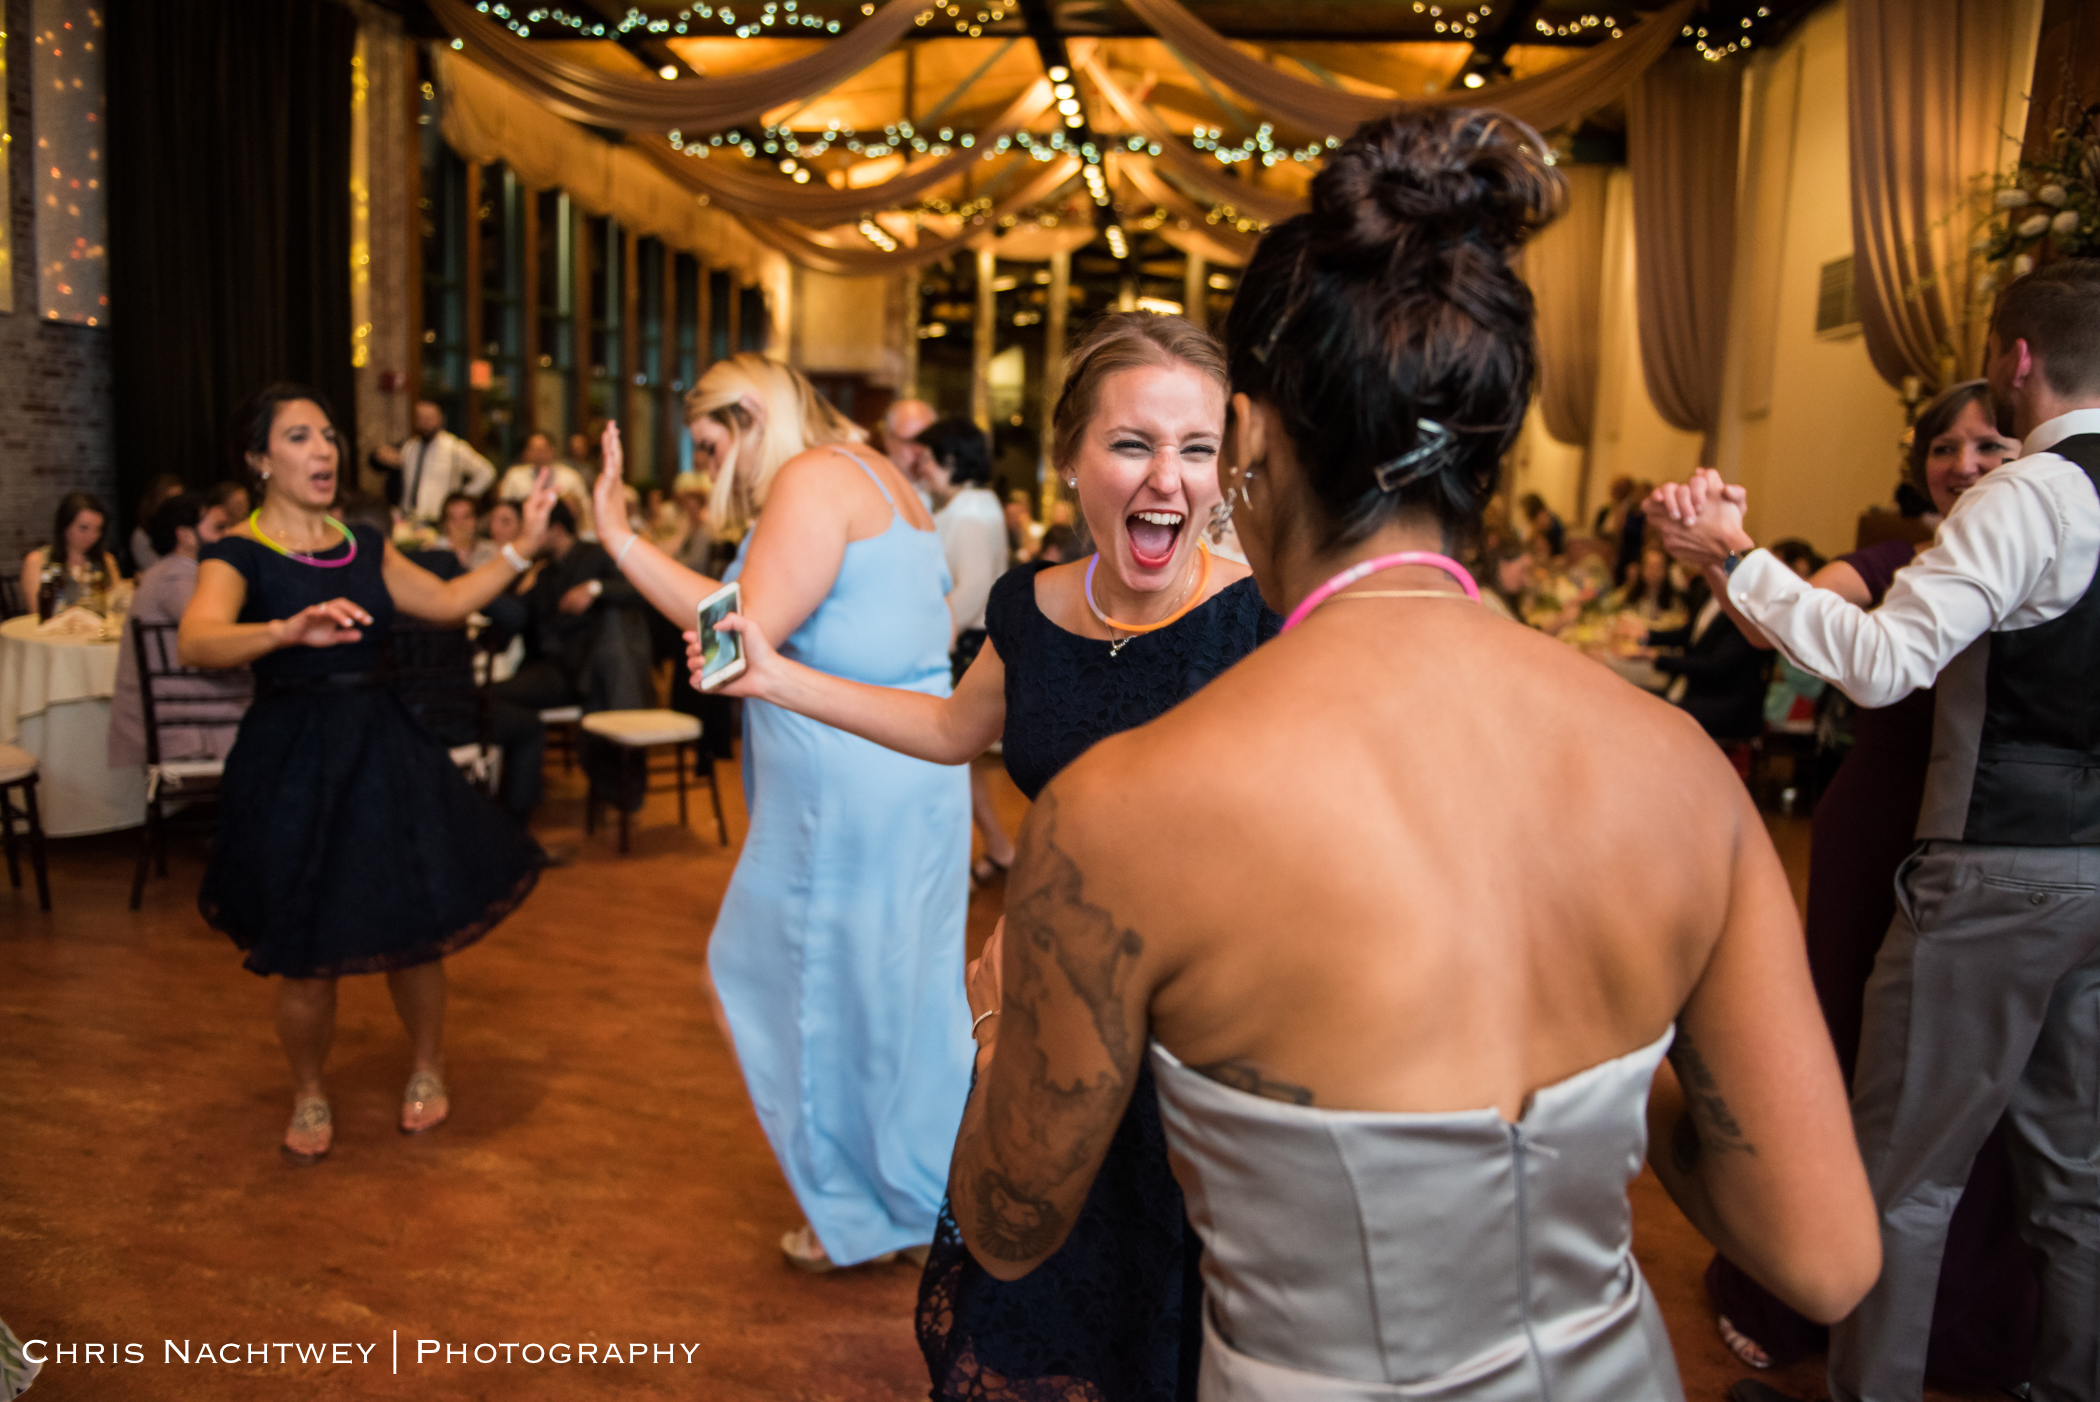 pond-house-cafe-wedding-hartford-ct-photos-chris-nachtwey-photography-2017-jackie-matt-46.jpg